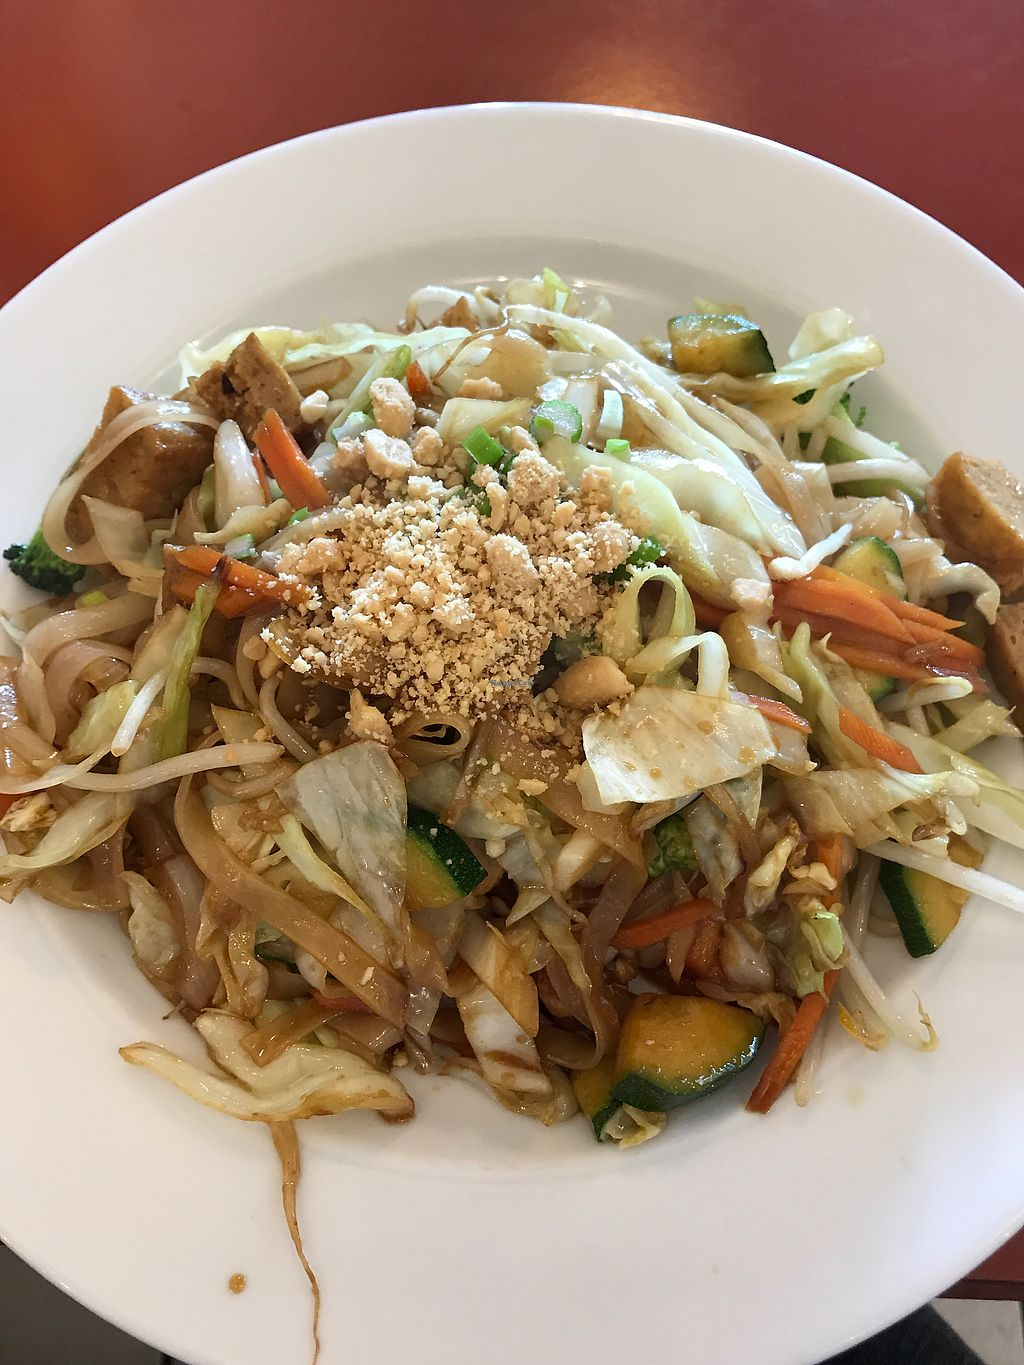 """Photo of Tong Thai  by <a href=""""/members/profile/Milipili"""">Milipili</a> <br/>Pad Thai <br/> February 14, 2018  - <a href='/contact/abuse/image/80426/359246'>Report</a>"""